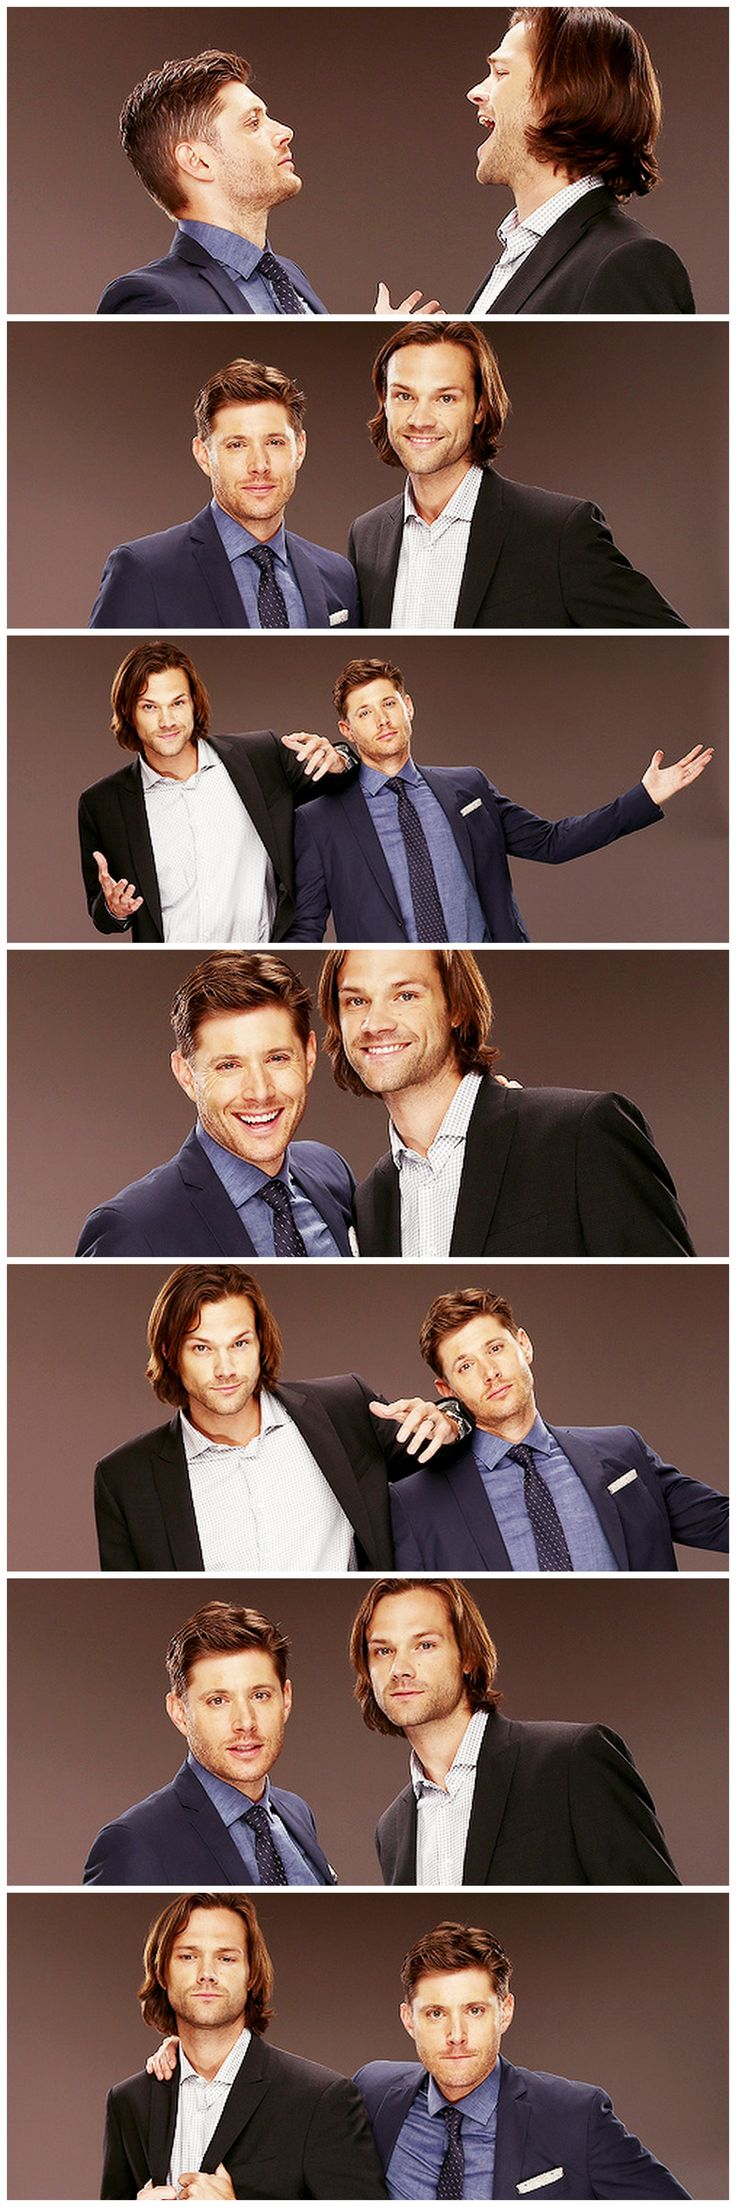 I'll be off for a little while (off on an adventure •.• woop woop) and I will take this opportunity to say I LOVE EVERY SINGLE ONE OF Y'ALL <3 jeez louise, you guys are the best! To share the love, here is a fab collection of J2 that I know you will love as much as I do. Srsly, keep it kwl and enjoy your summer, m8. Comment on anything (and everything), I looooove reading comments so much. Also, I wish you all the best TV content this summer :P baaaii x KawaiiCas